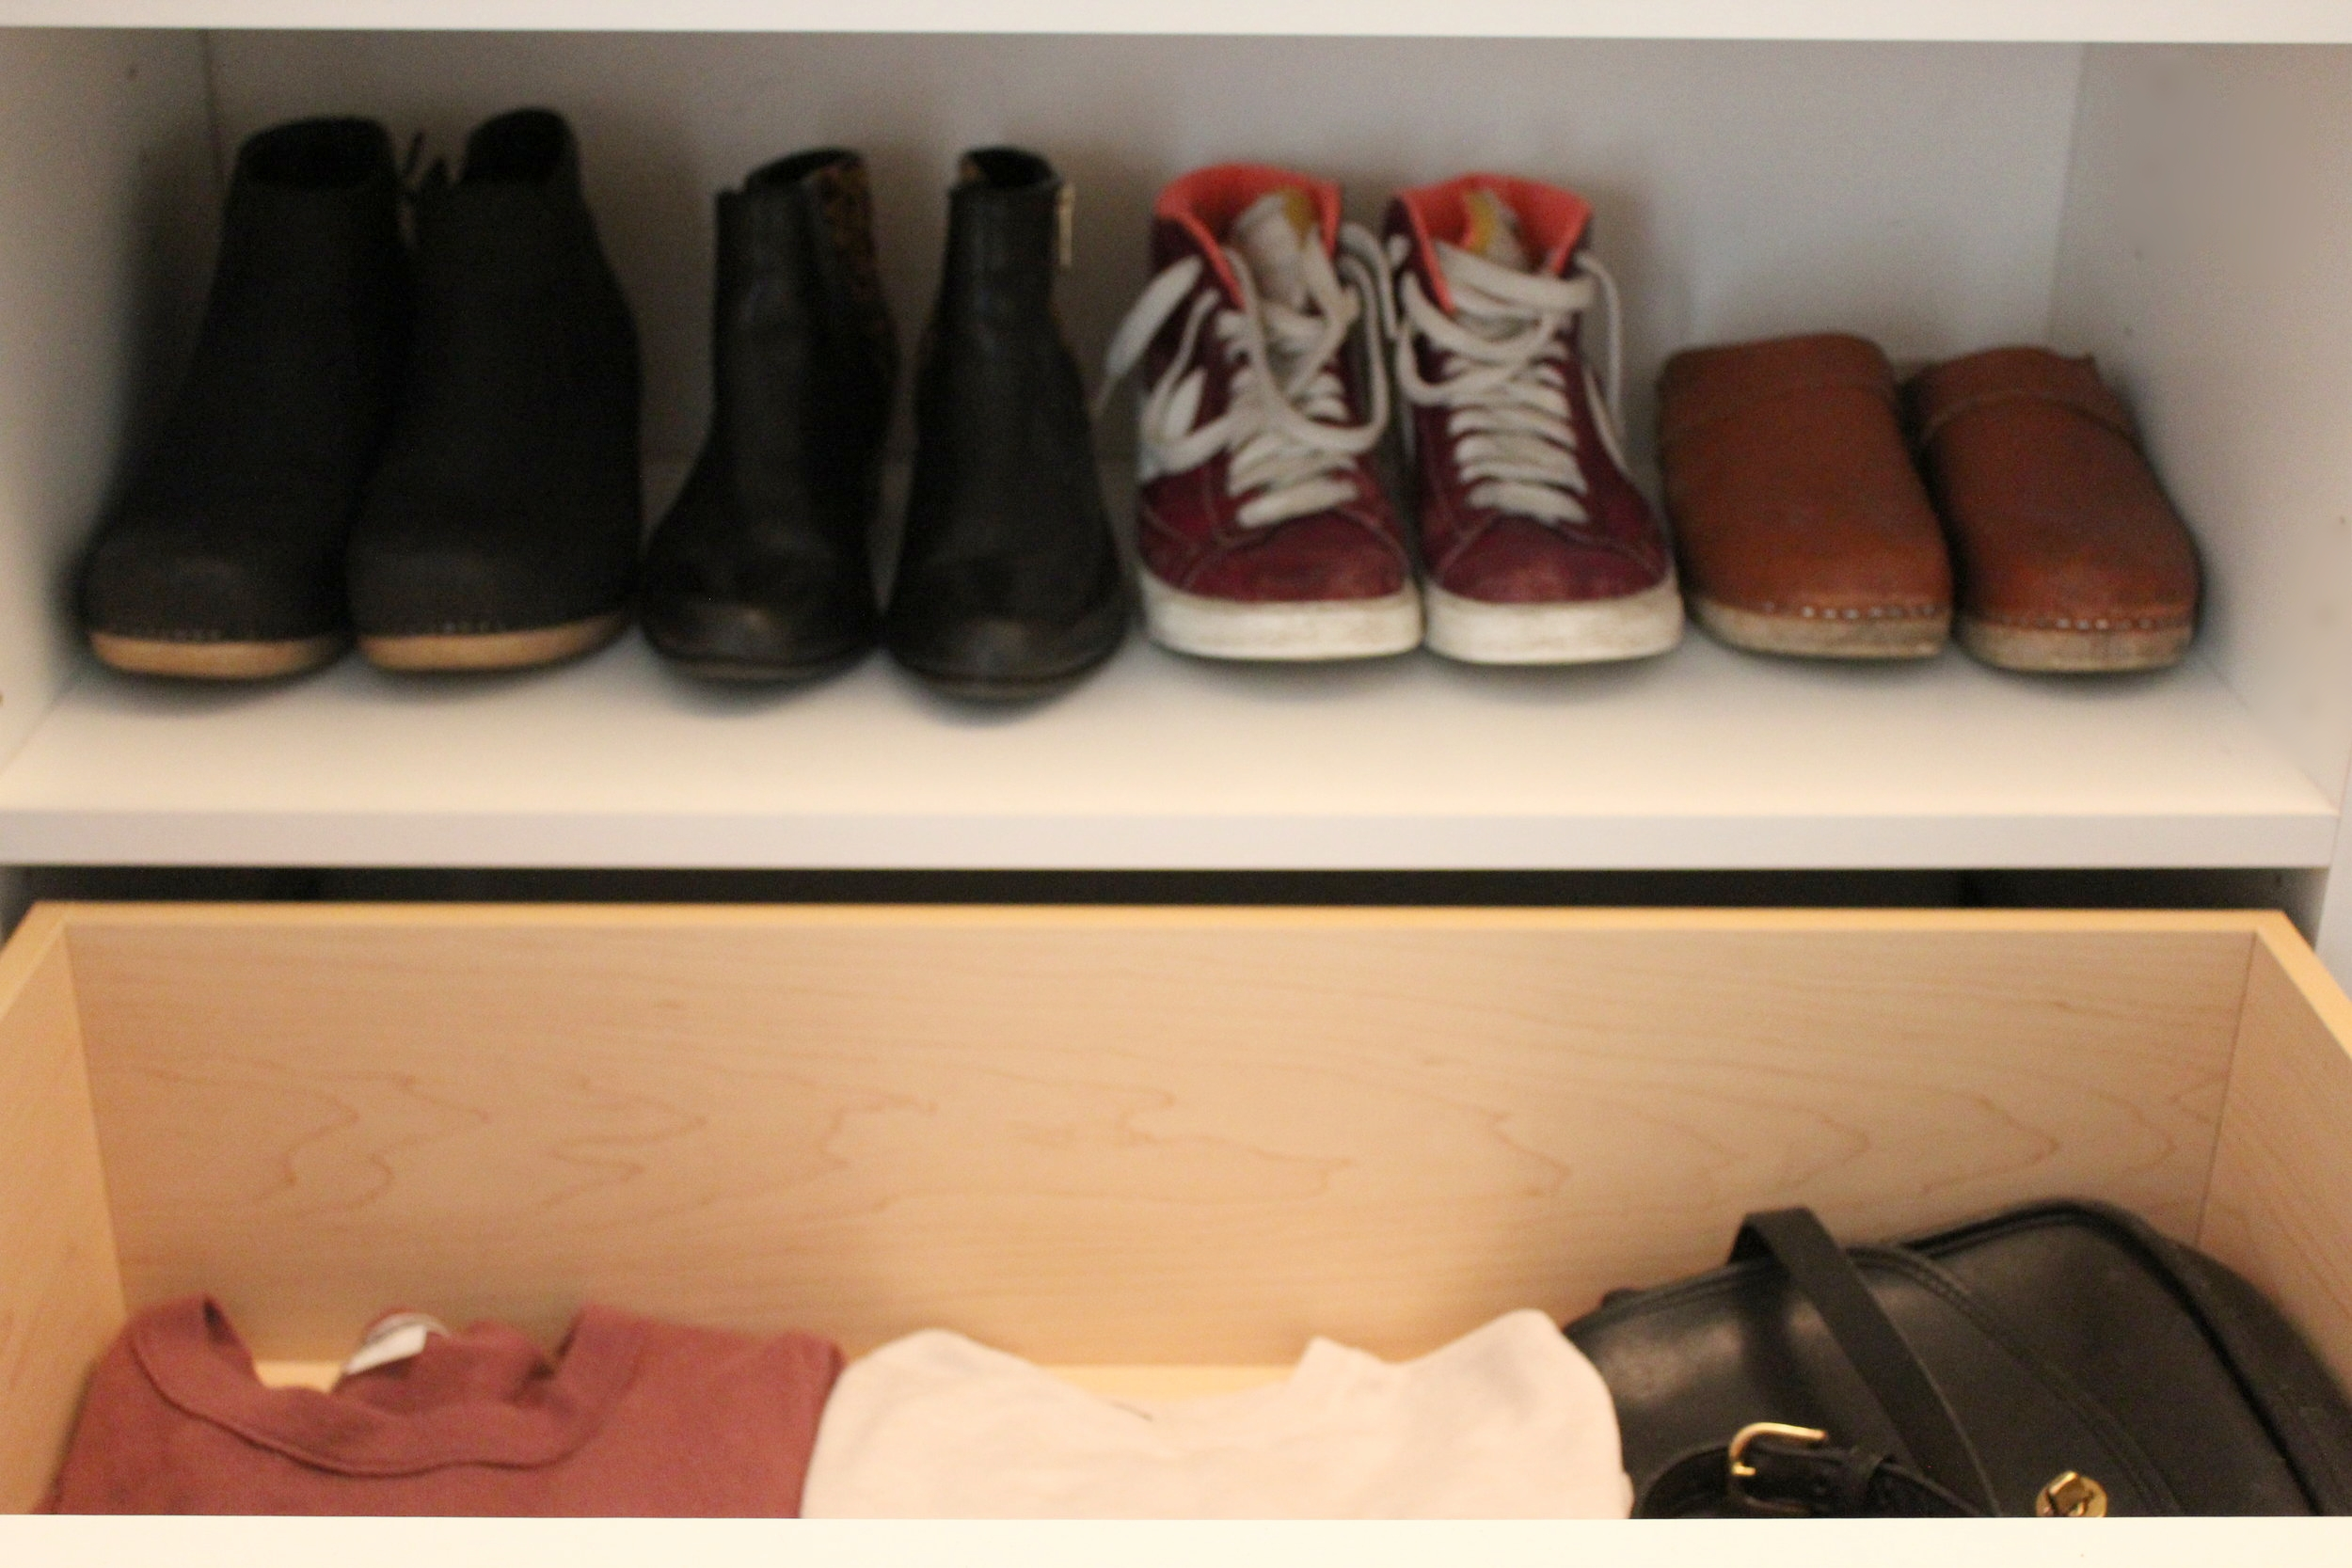 Excuse my dirty clogs!!  Look at the space in that sweater drawer!